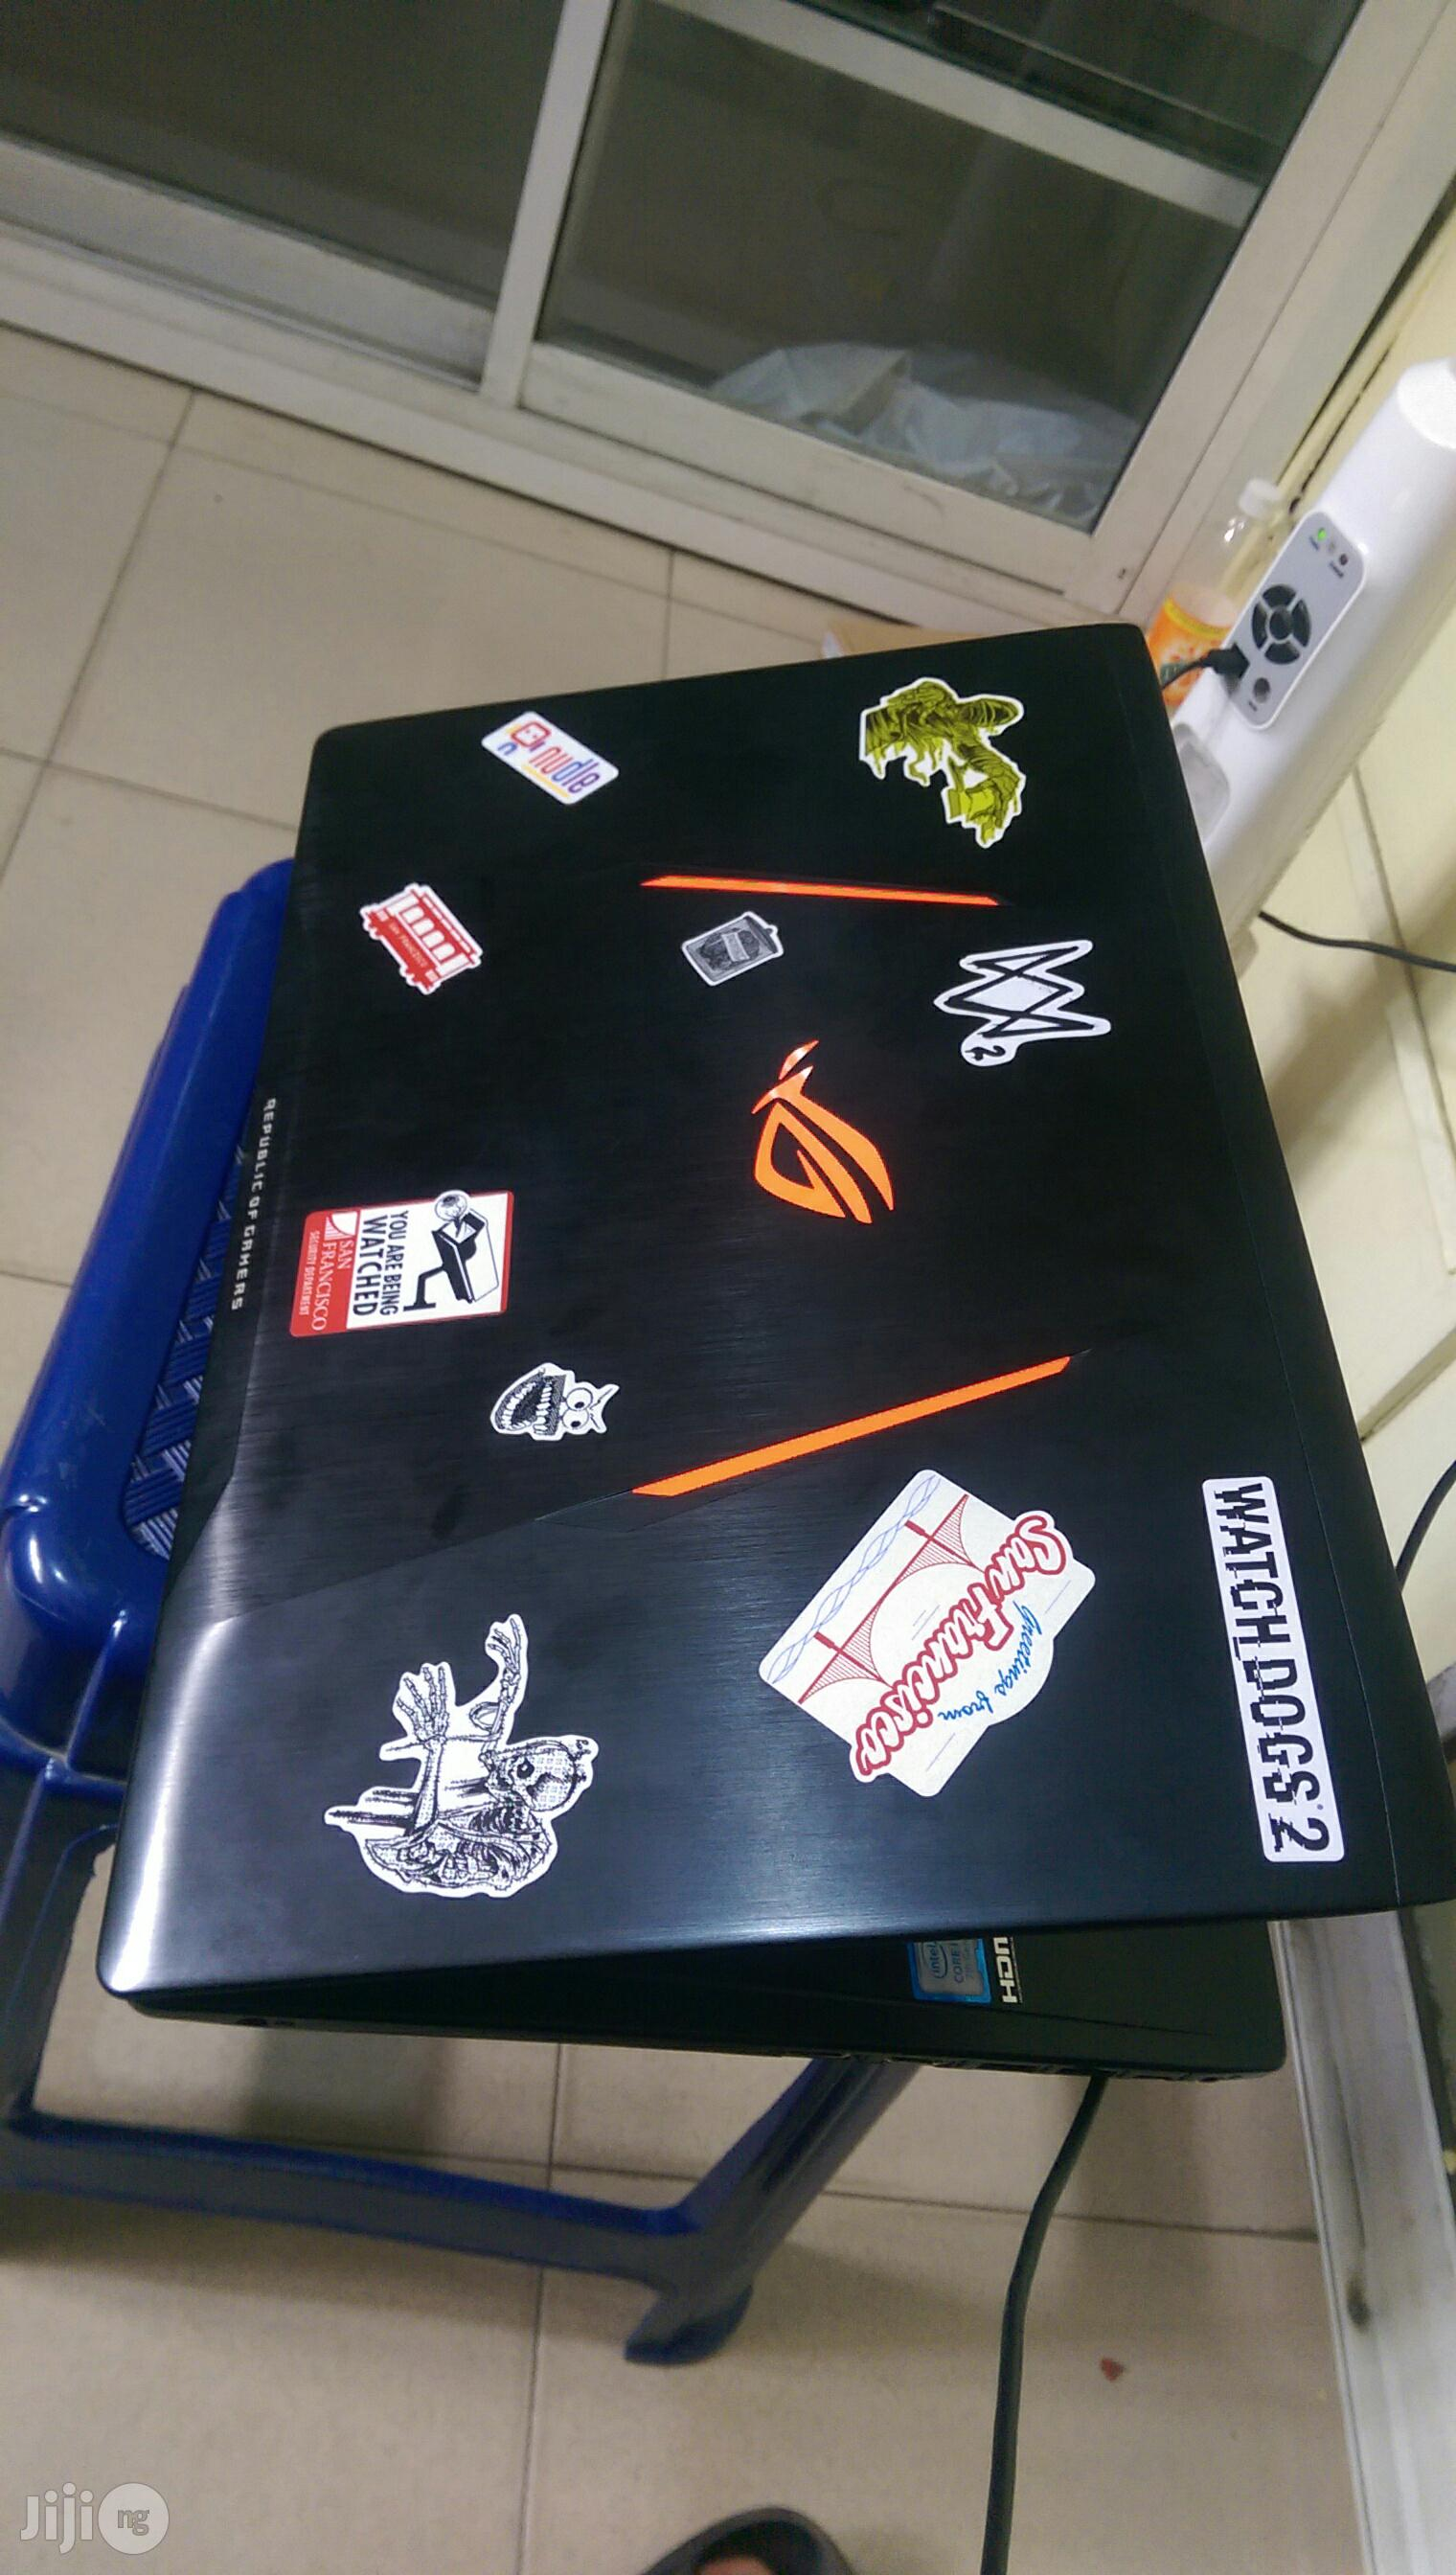 Laptop Asus ROG GL553VE 8GB Intel Core i7 HDD 1T   Laptops & Computers for sale in Ikeja, Lagos State, Nigeria